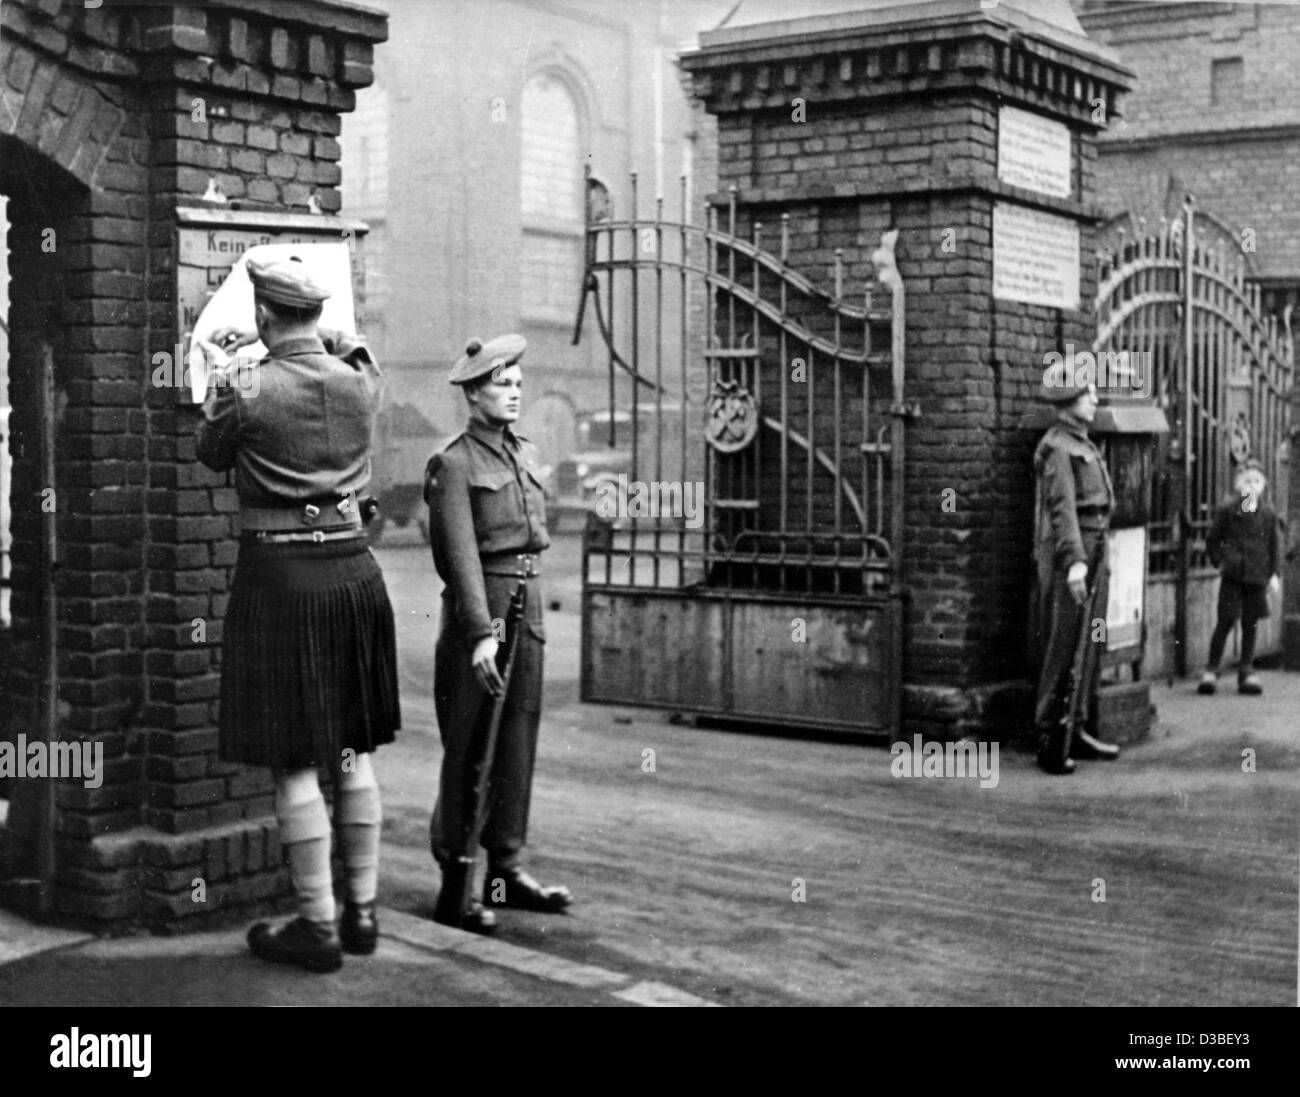 (dpa files) - A British army officer pins the act of disposal to the gate of a confiscated industry plant in the - Stock Image